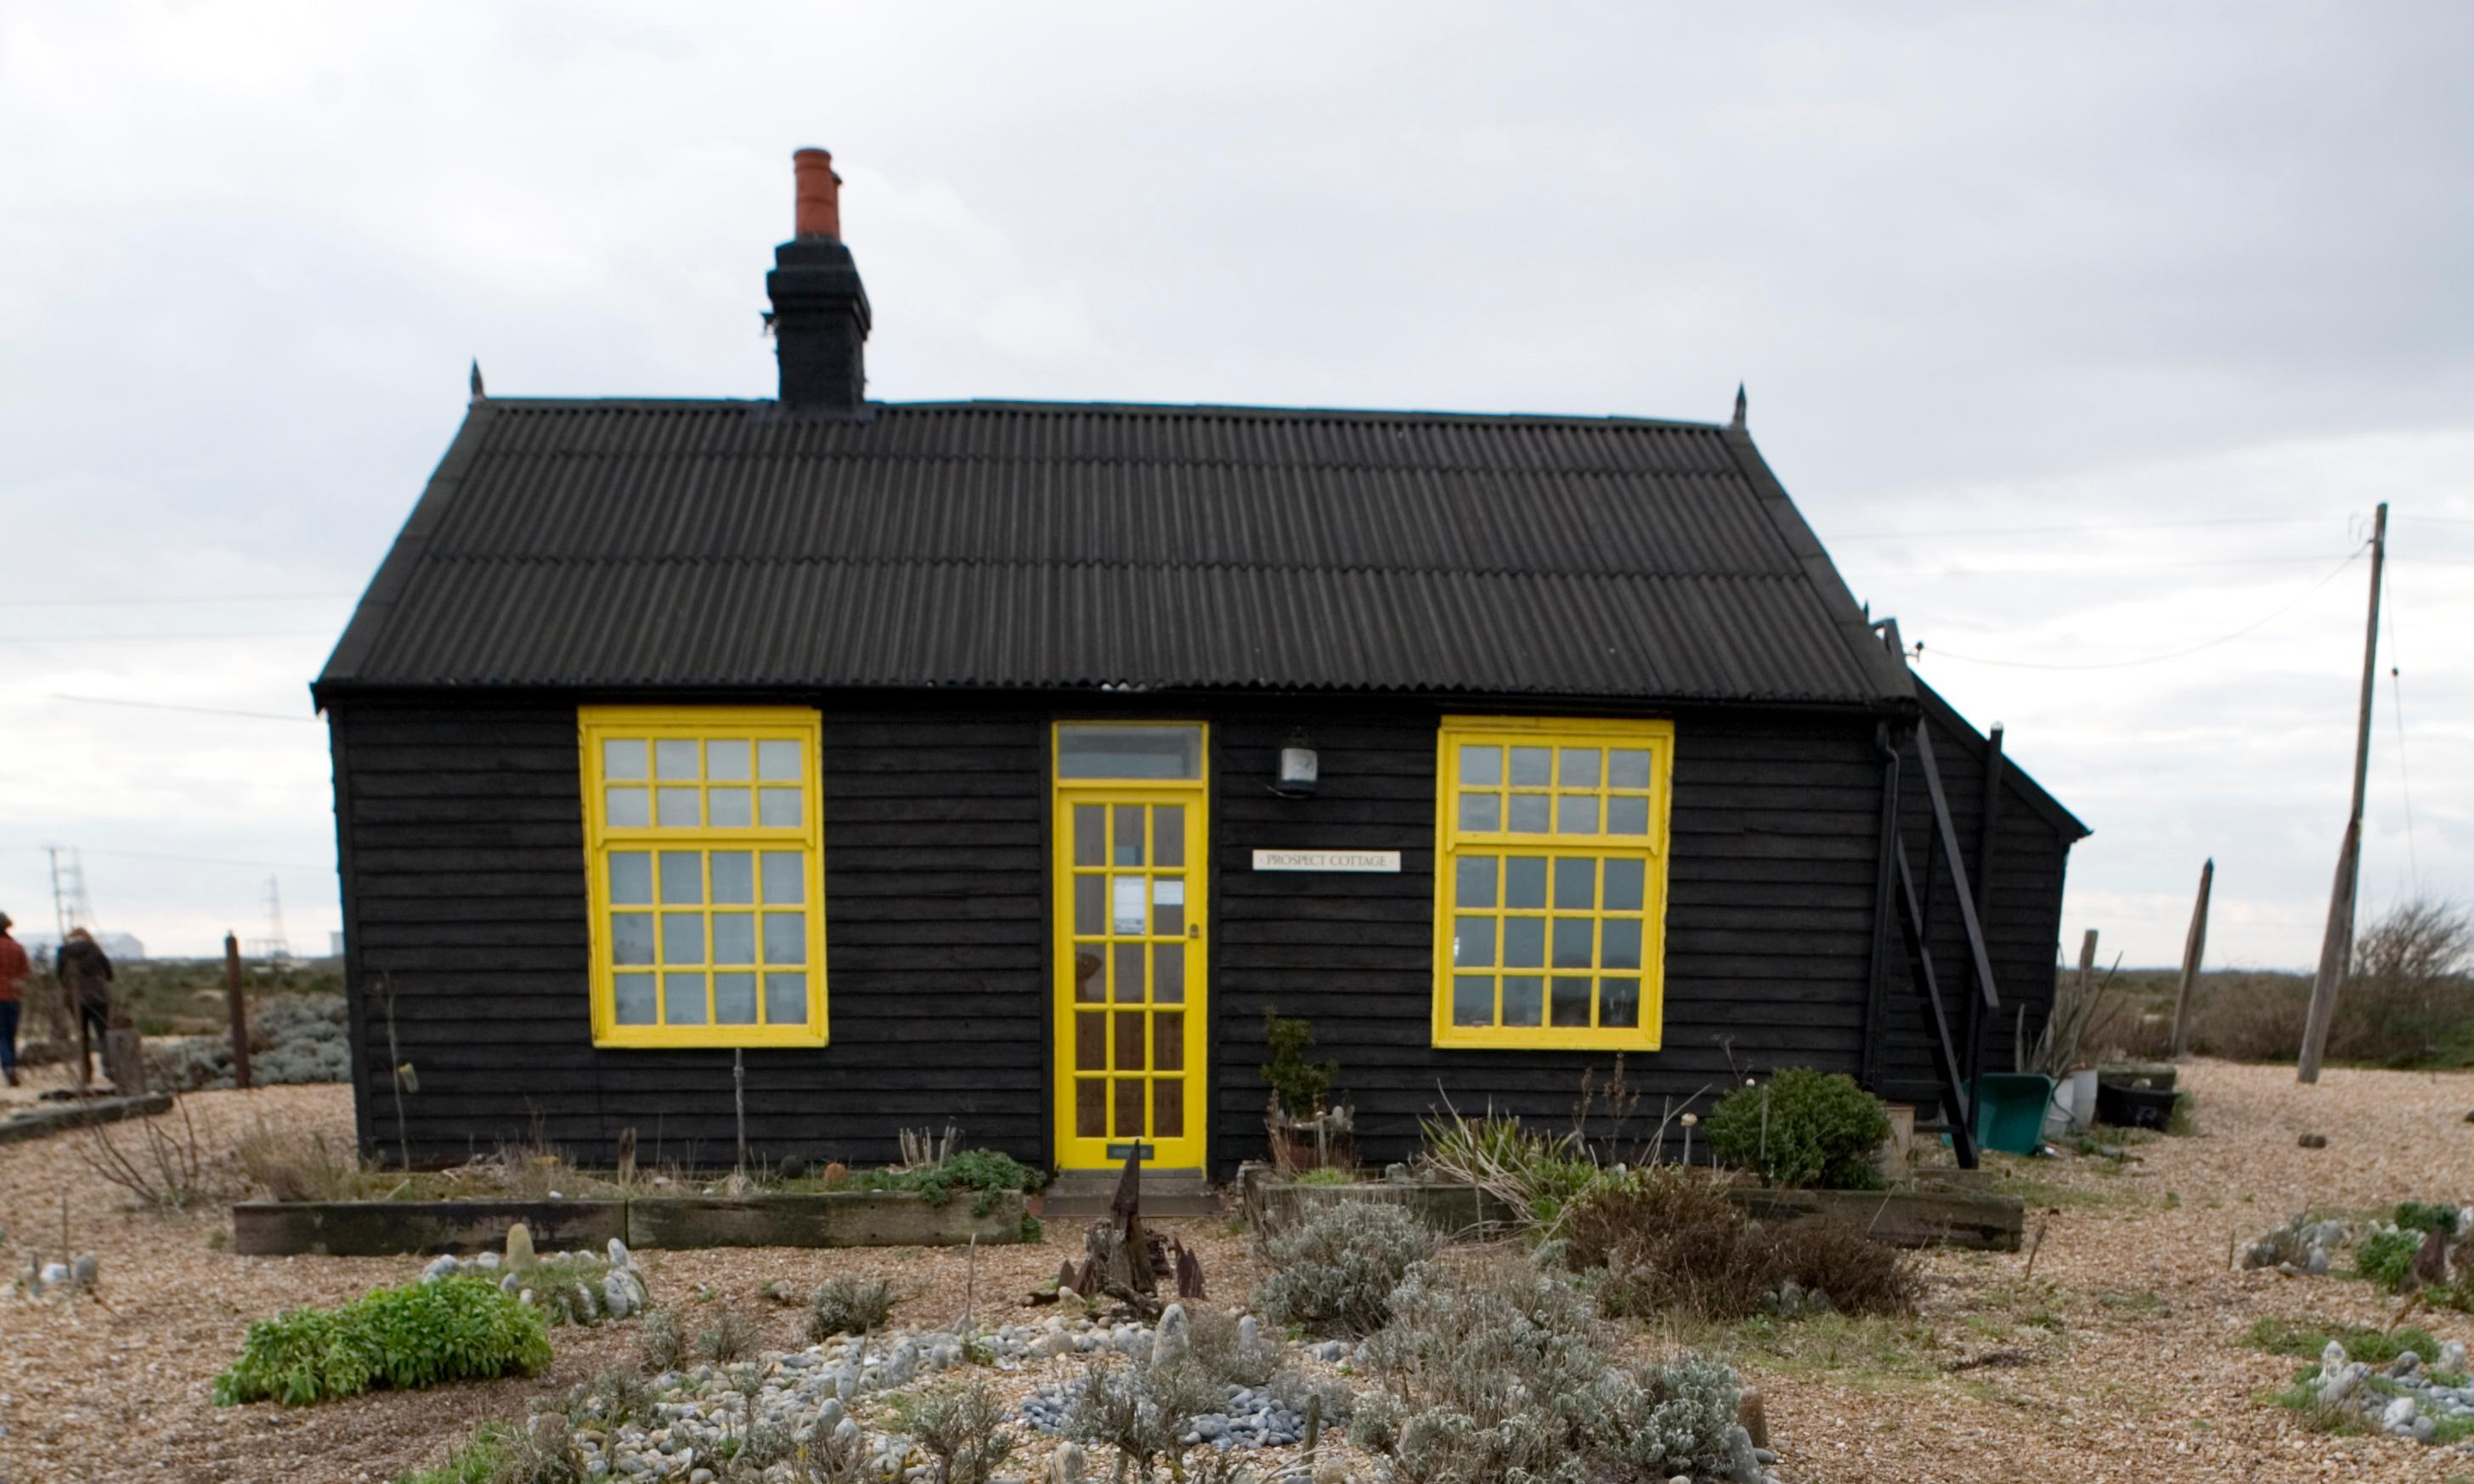 Derek Jarman's house provides a rare space for queer history. We must save it